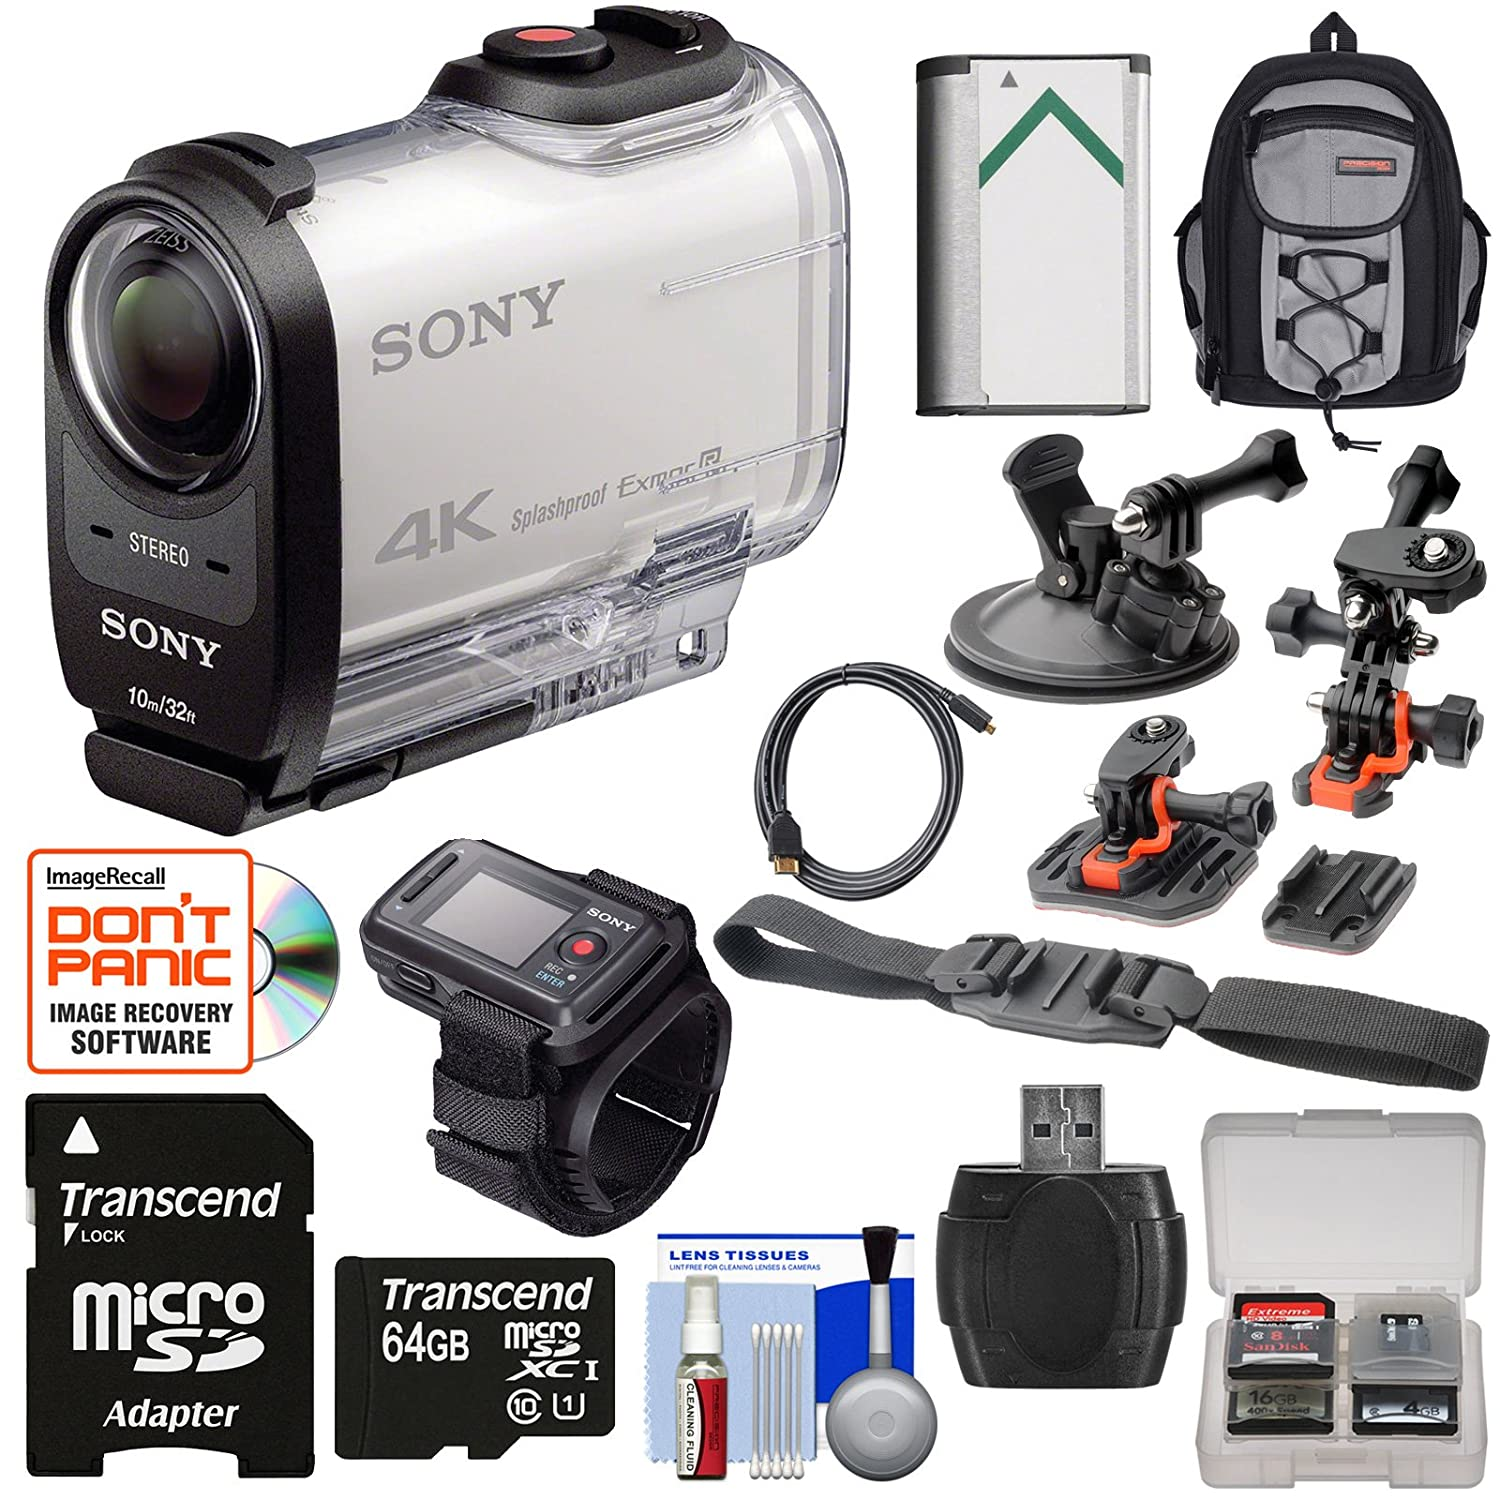 Sony Action Cam FDR-X1000VR Wi-Fi 4K HD Video Camera Camcorder & Remote + 64GB Card + 2 Helmet, Flat & Suction Cup Mounts + Battery + Backpack Kit